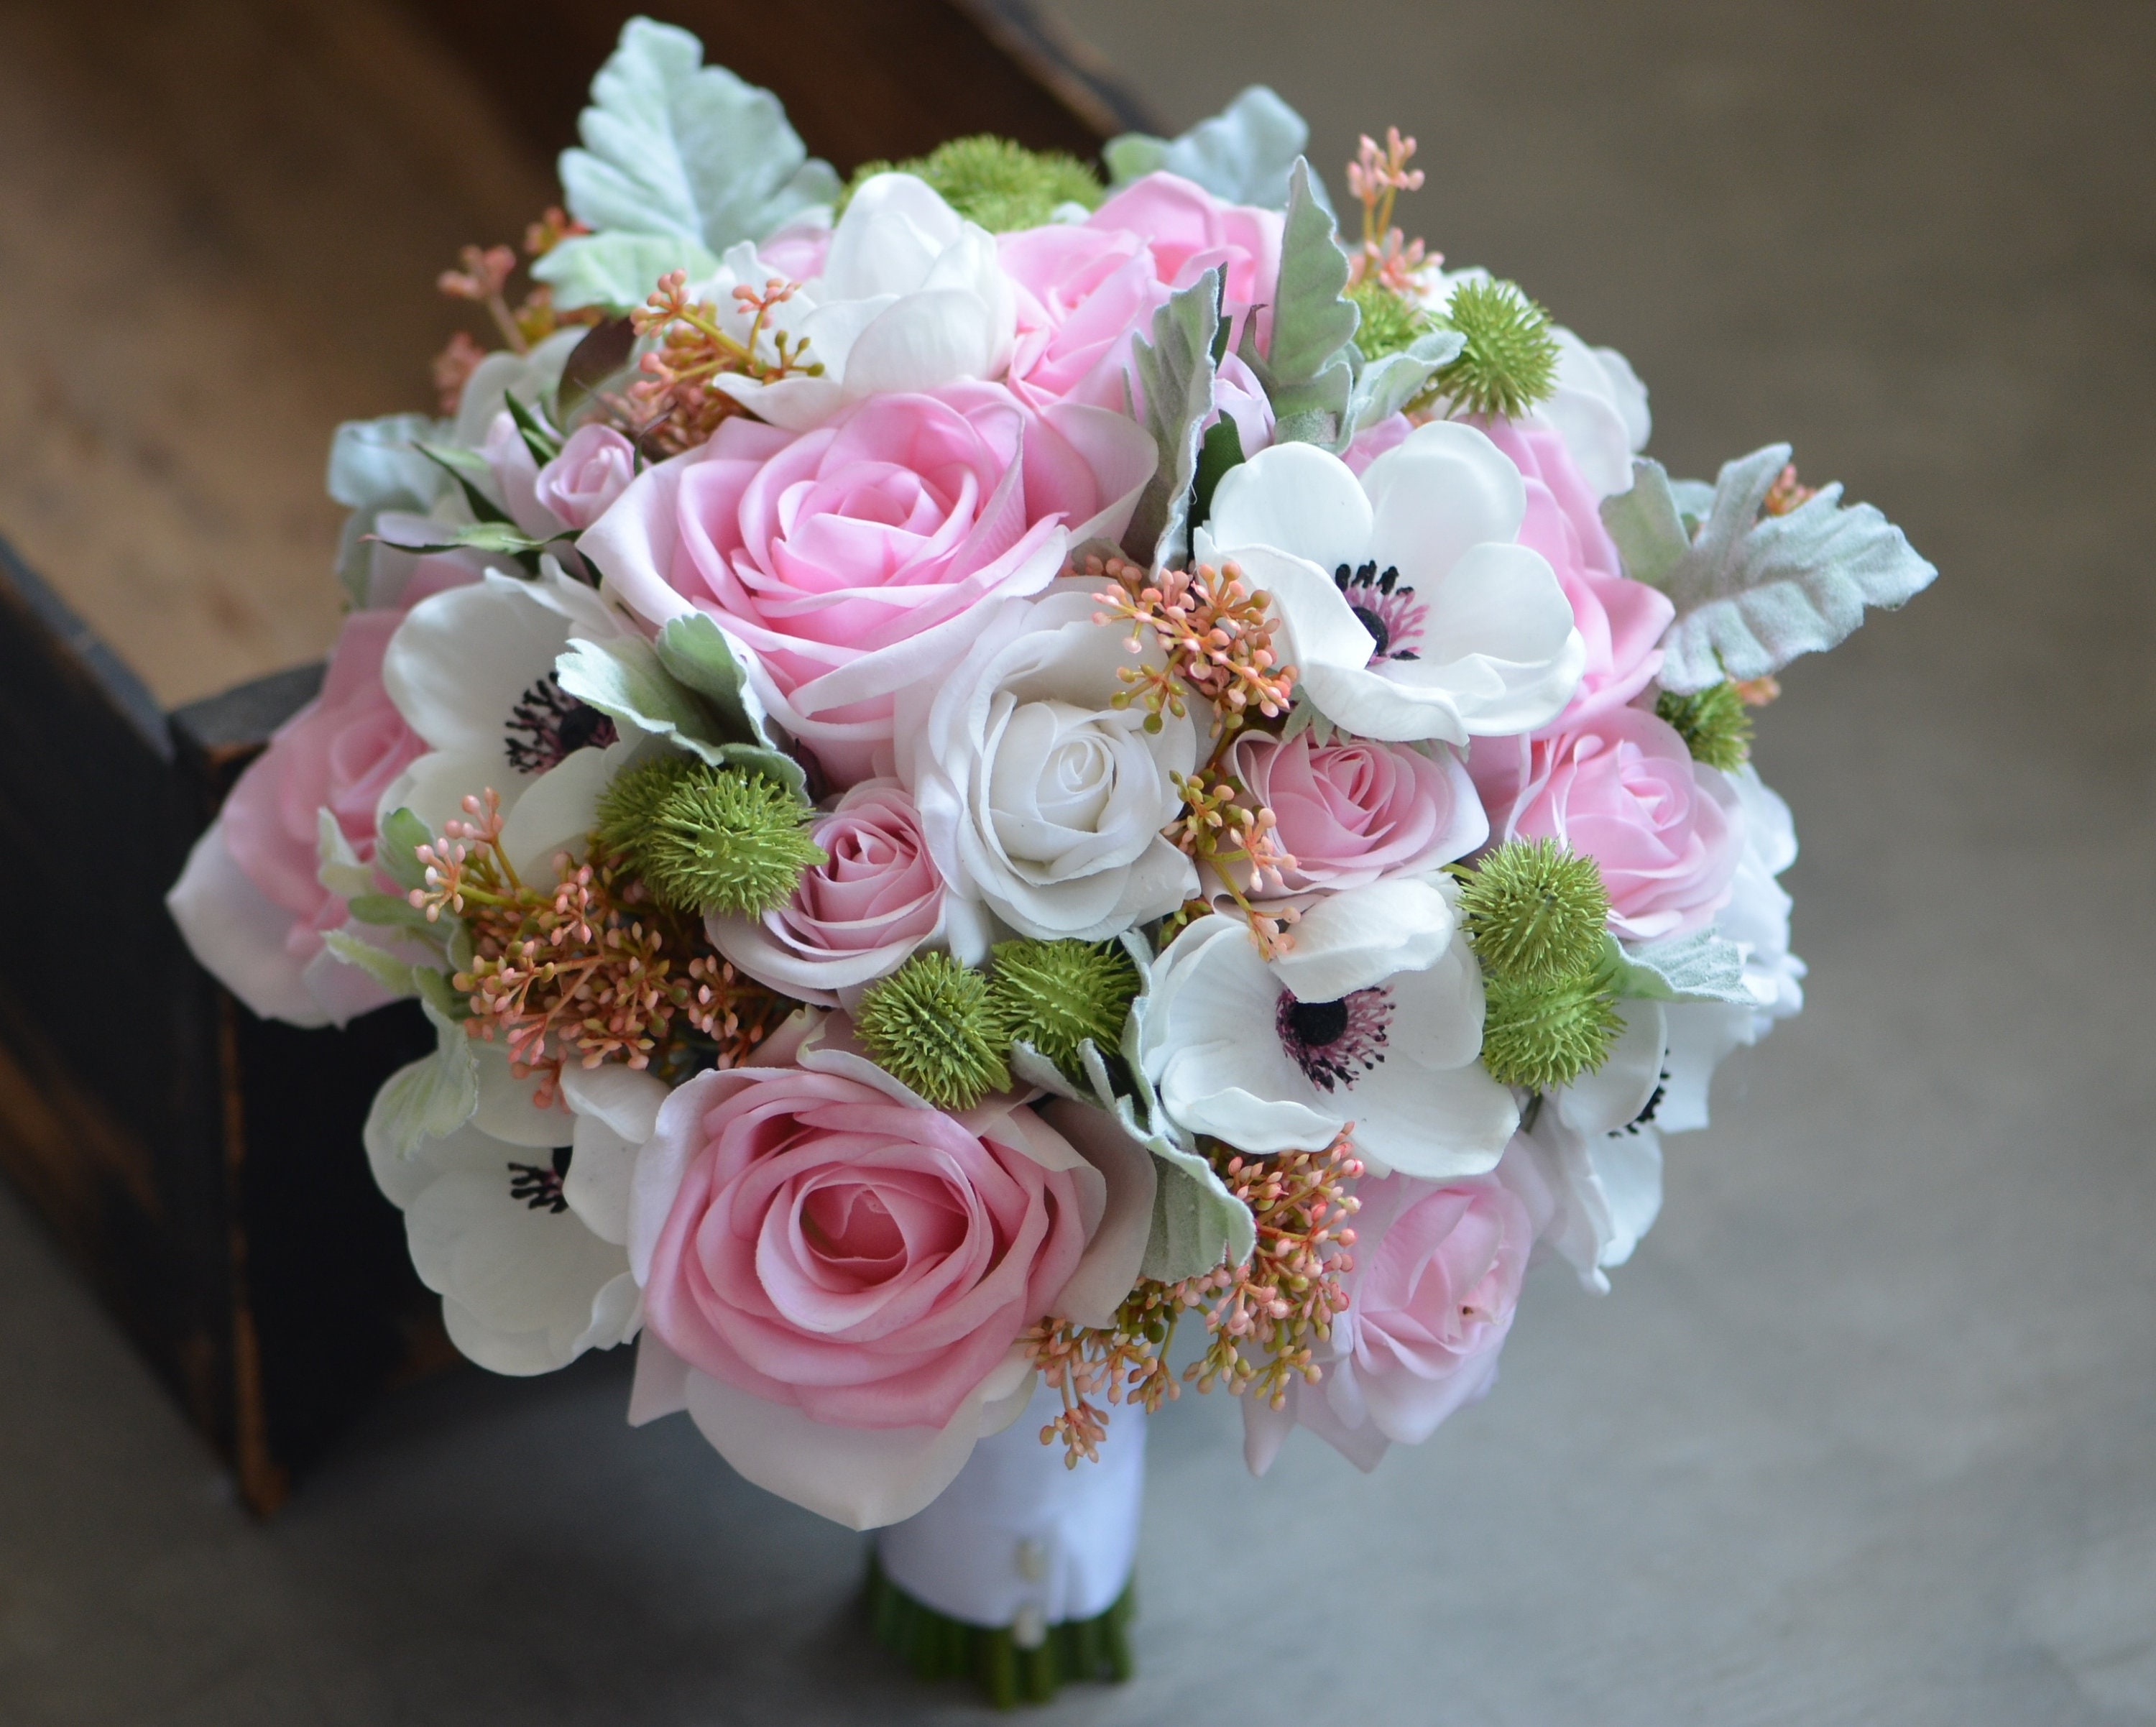 Roses anemones bridal bouquet real touch flowers light pink etsy zoom izmirmasajfo